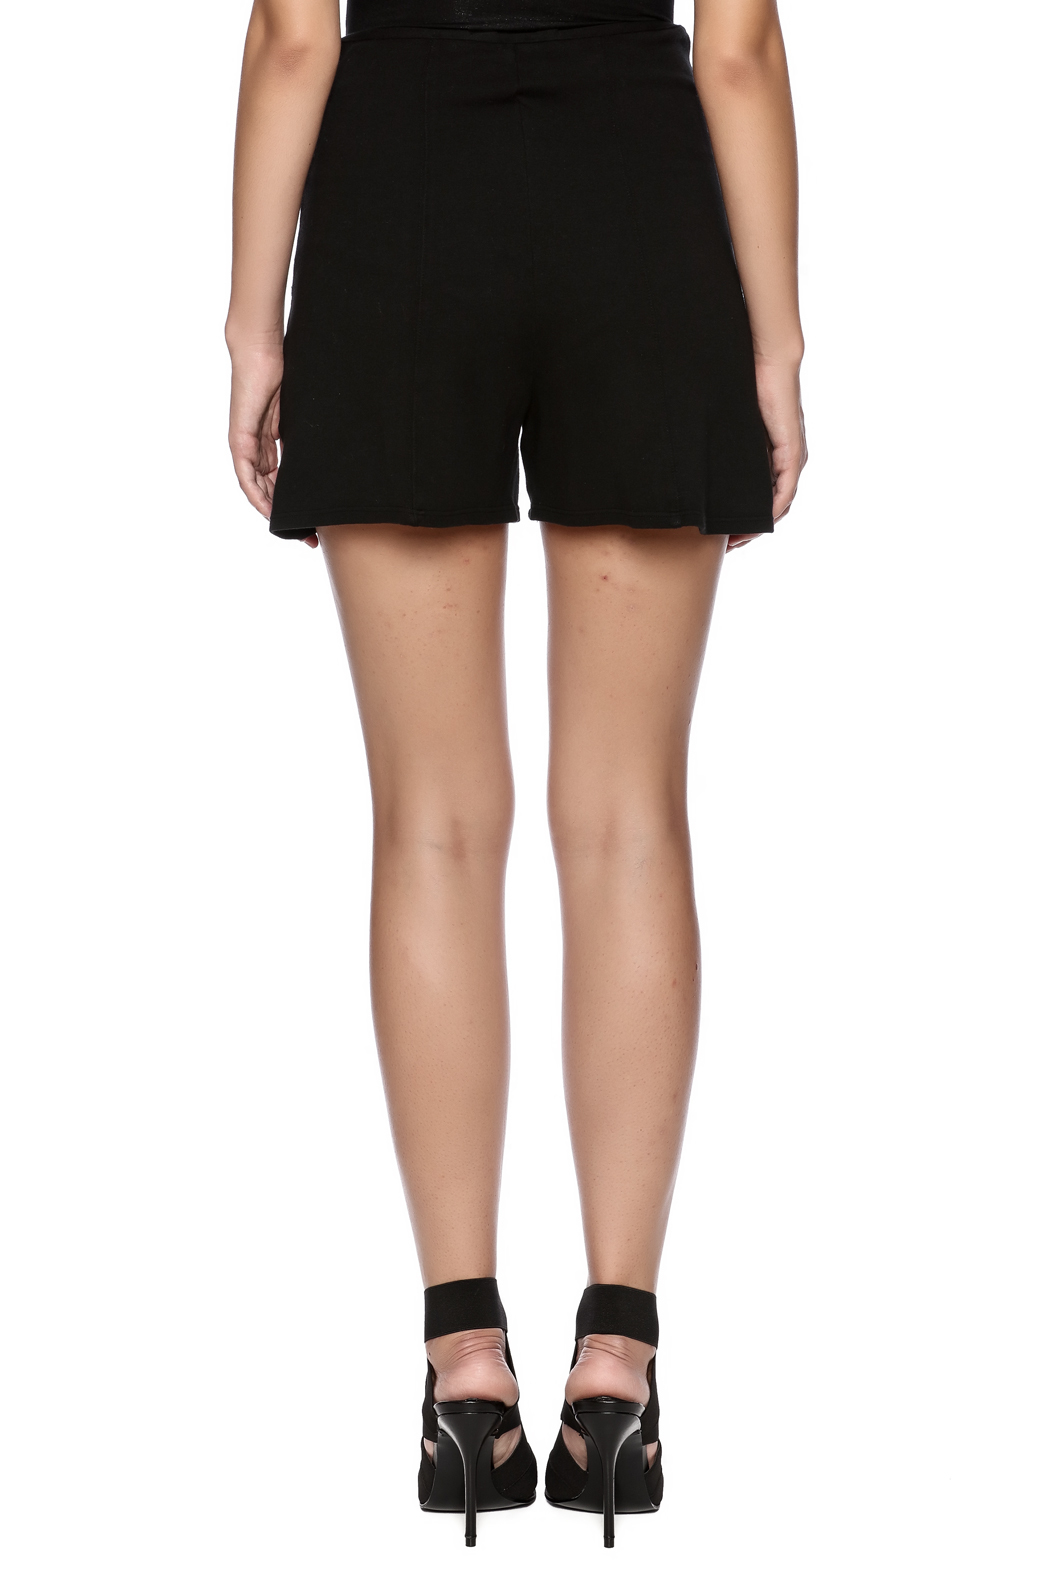 Groceries Apparel Black High Waisted Short - Back Cropped Image